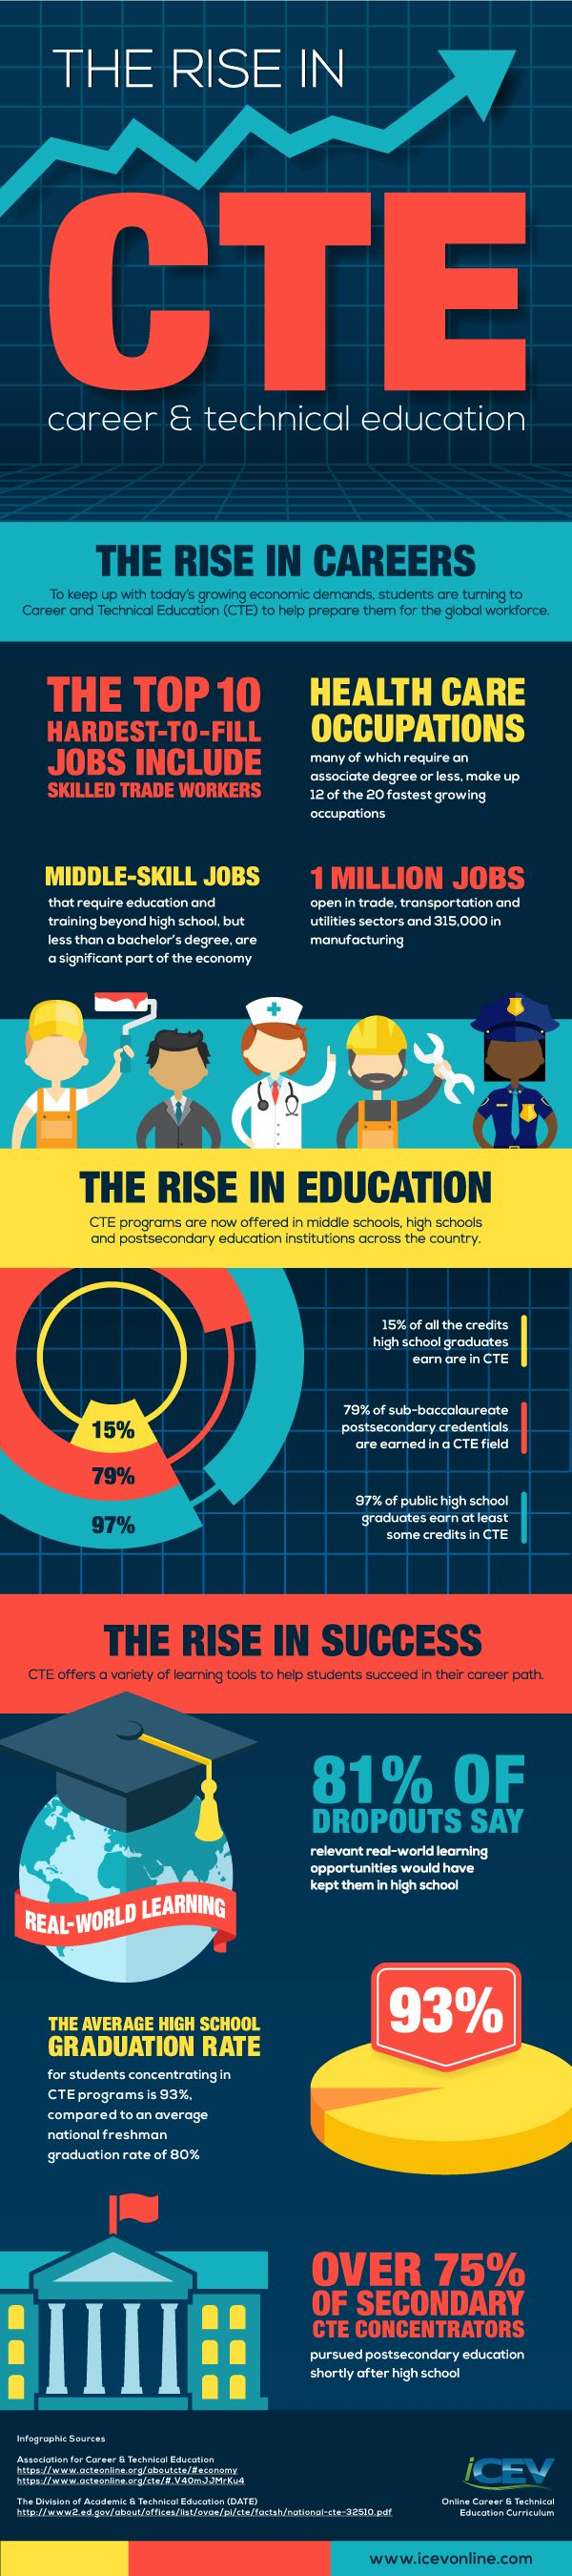 best images about career and technical education to keep pace growing economic demands and prepare students to compete in a competitive workforce education providers are turning to career and